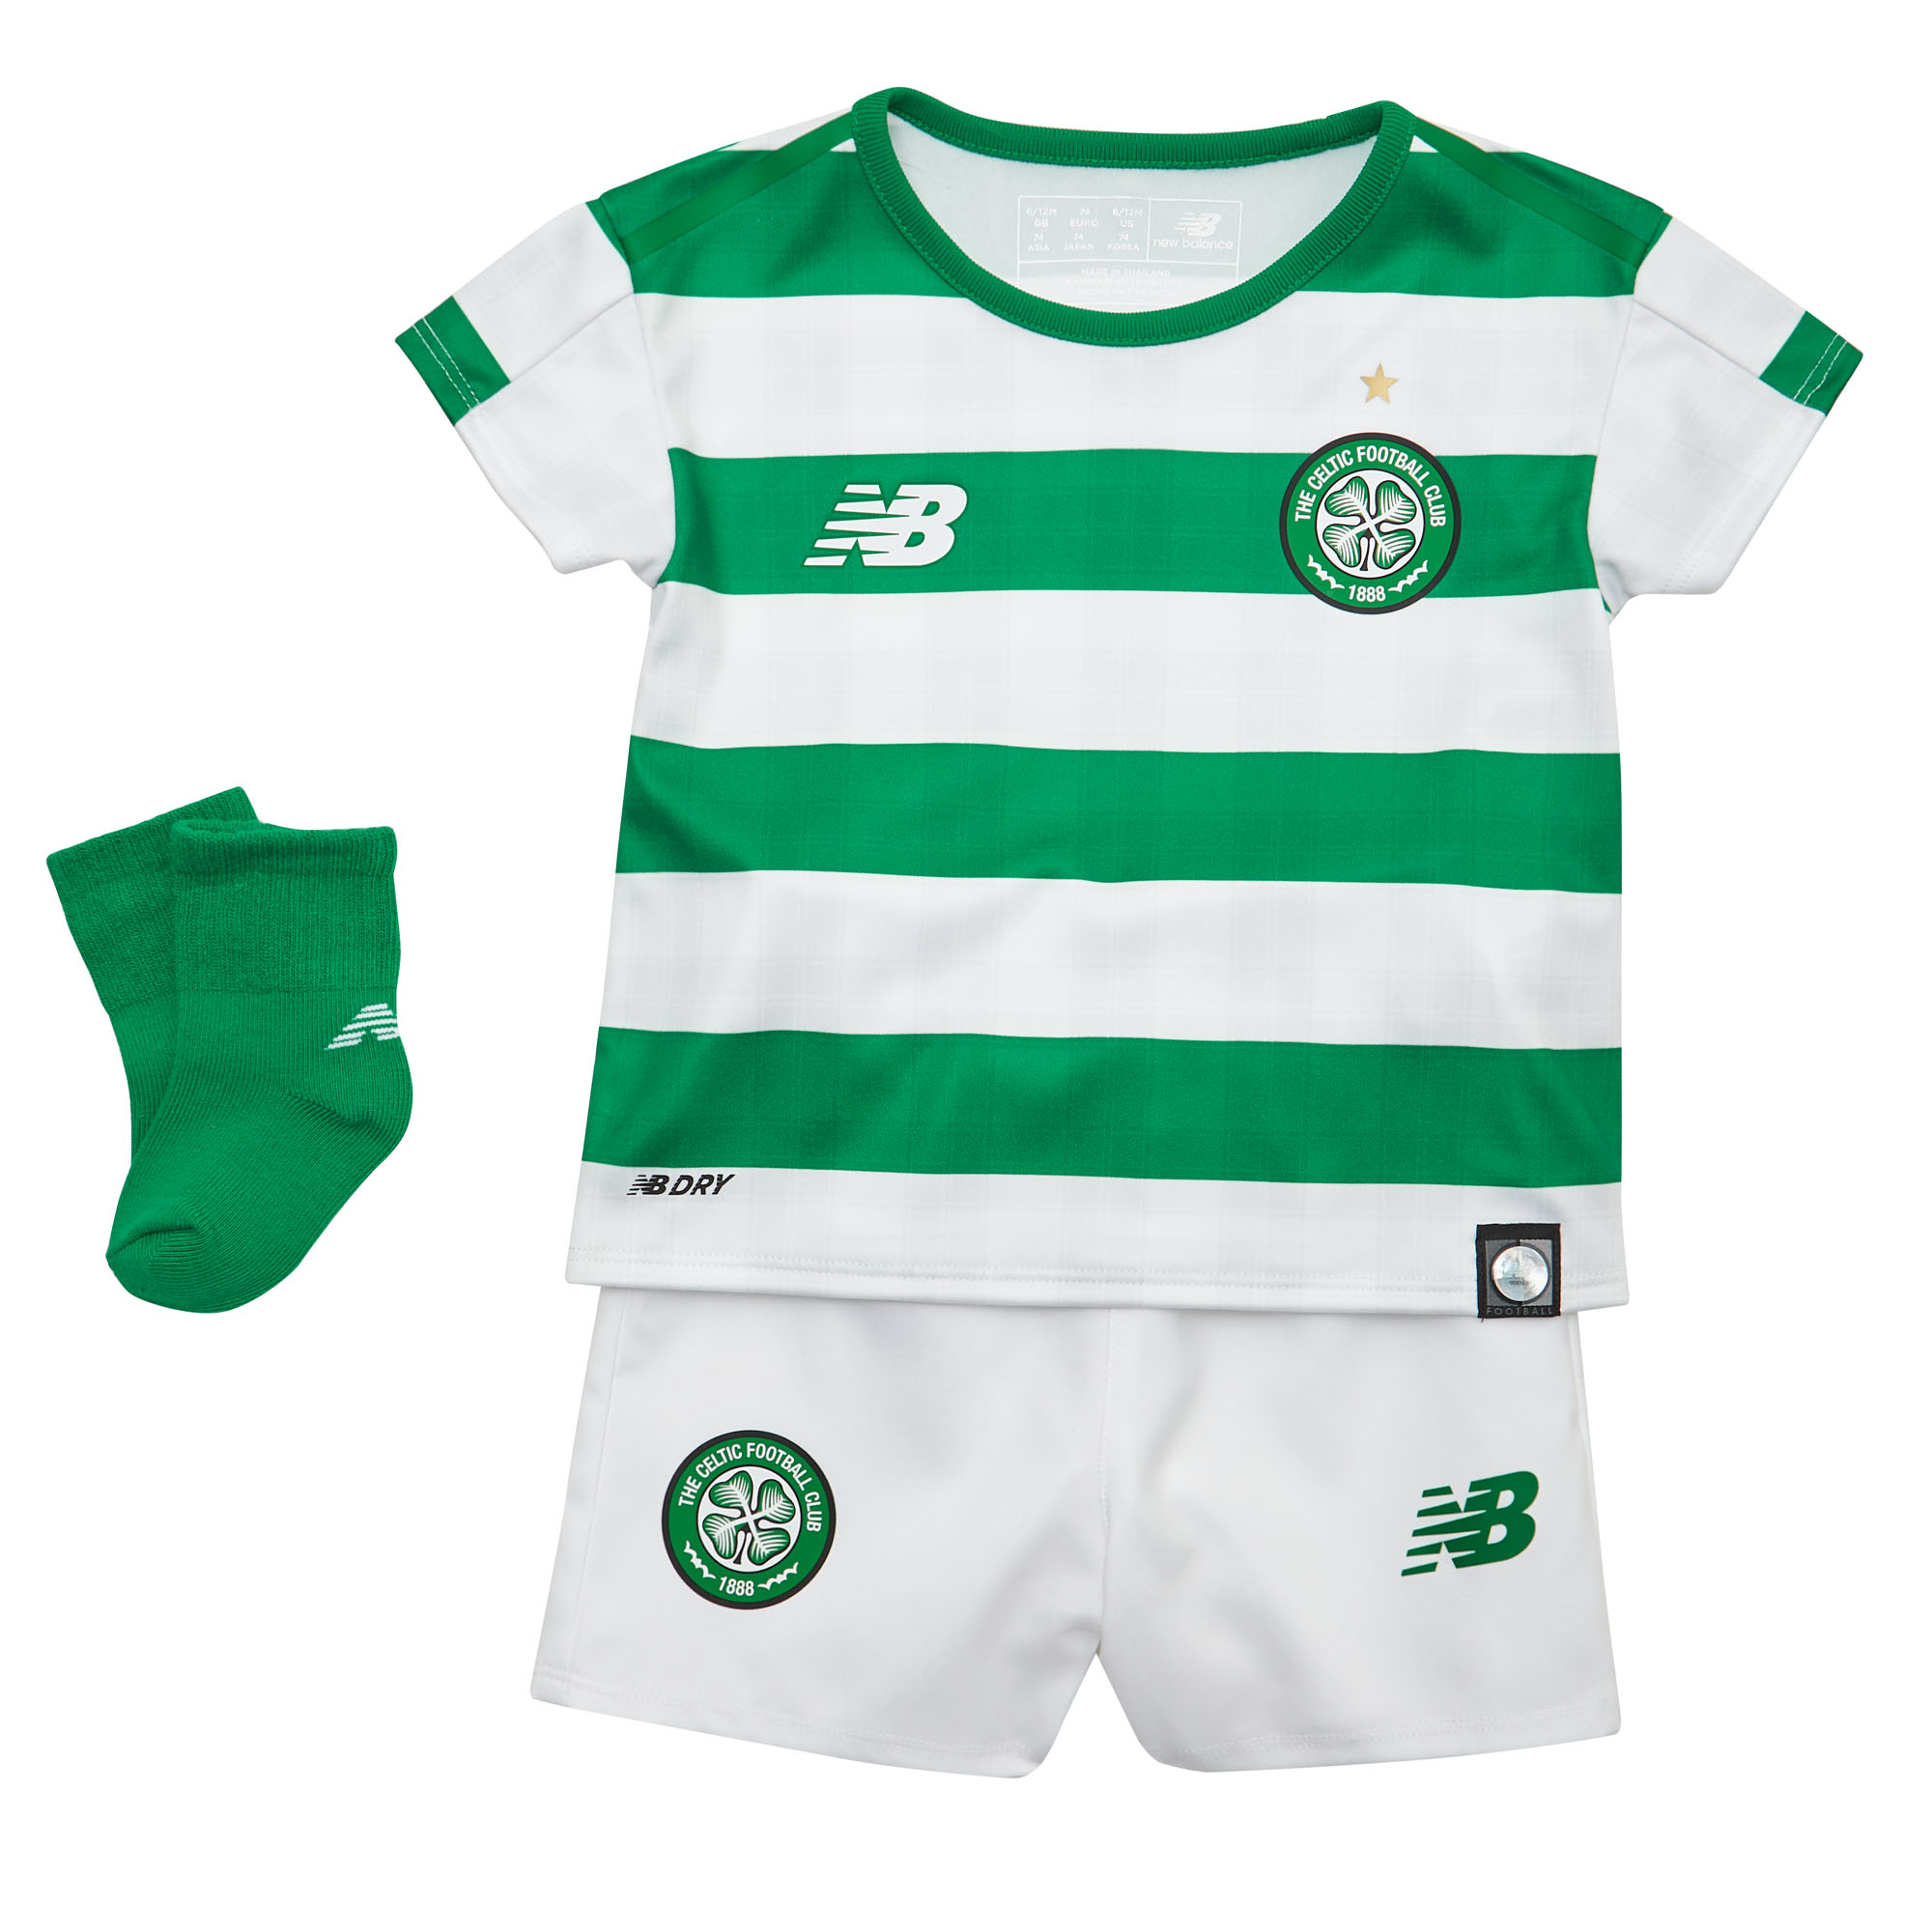 8761d9aef Details about New Balance Celtic FC 2018 19 Kids Baby Home Football Kit  White Green